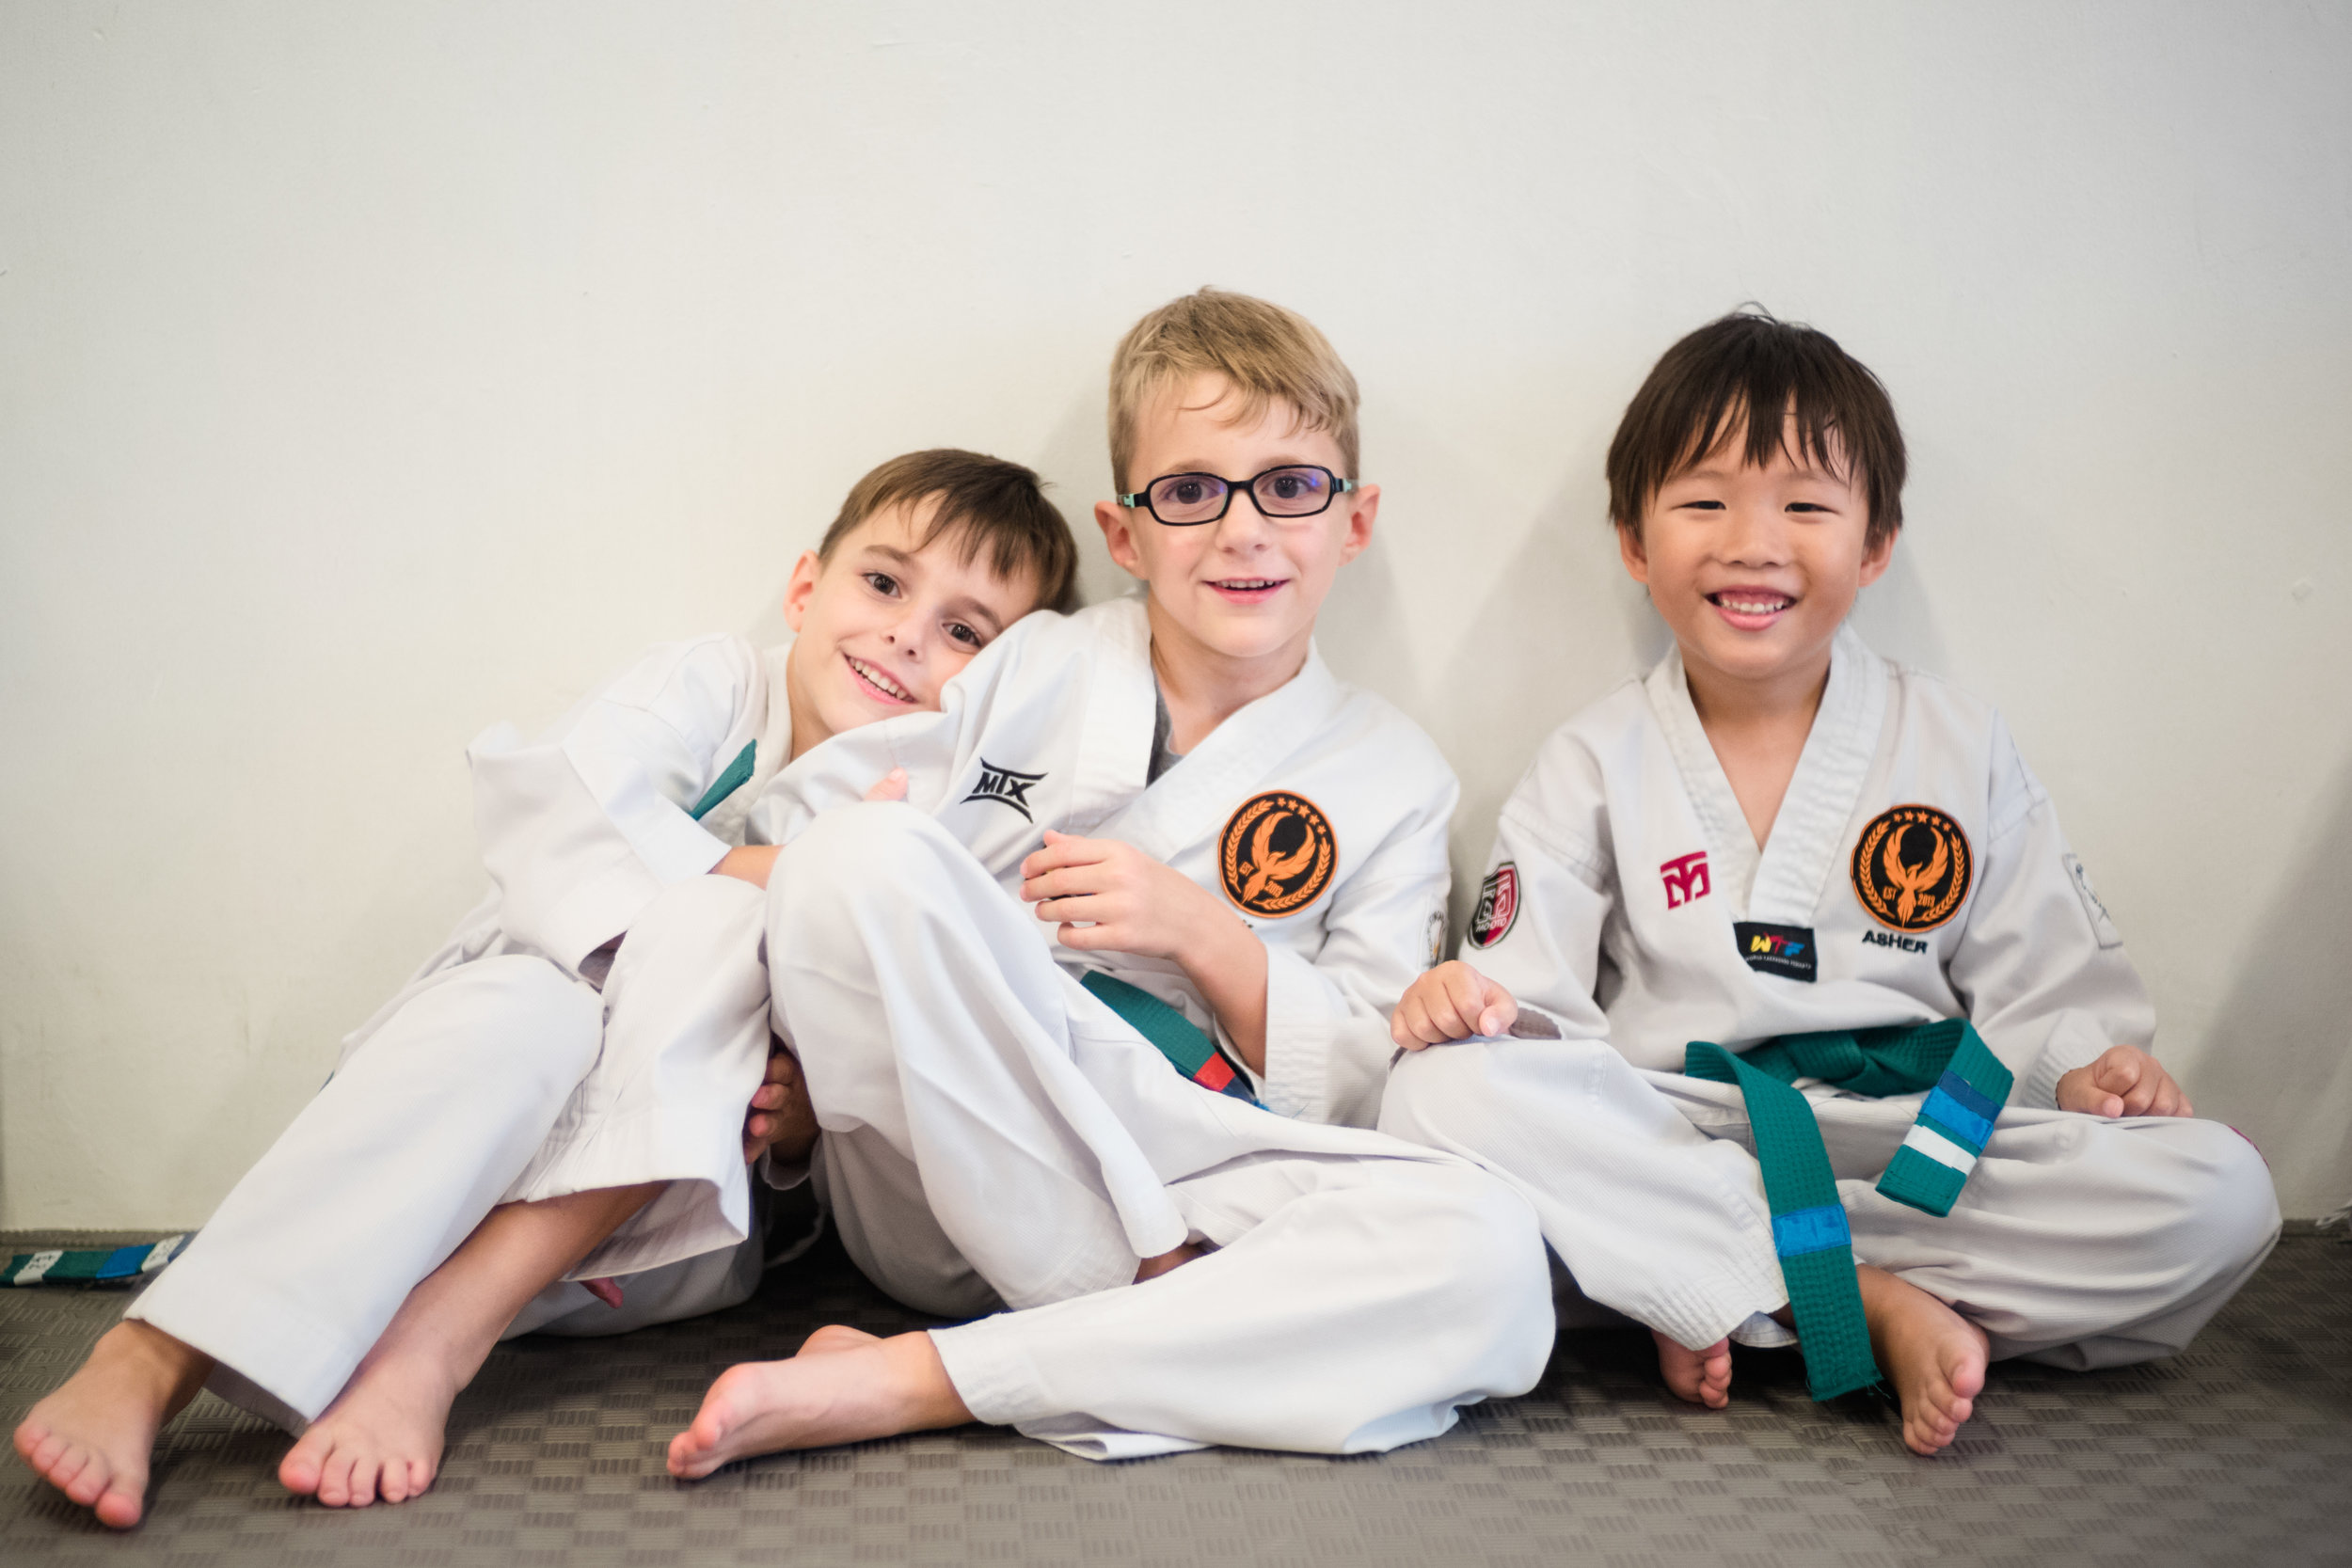 Is Taekwondo right for your child? - Find out more about a father's viewpoint on the topic.